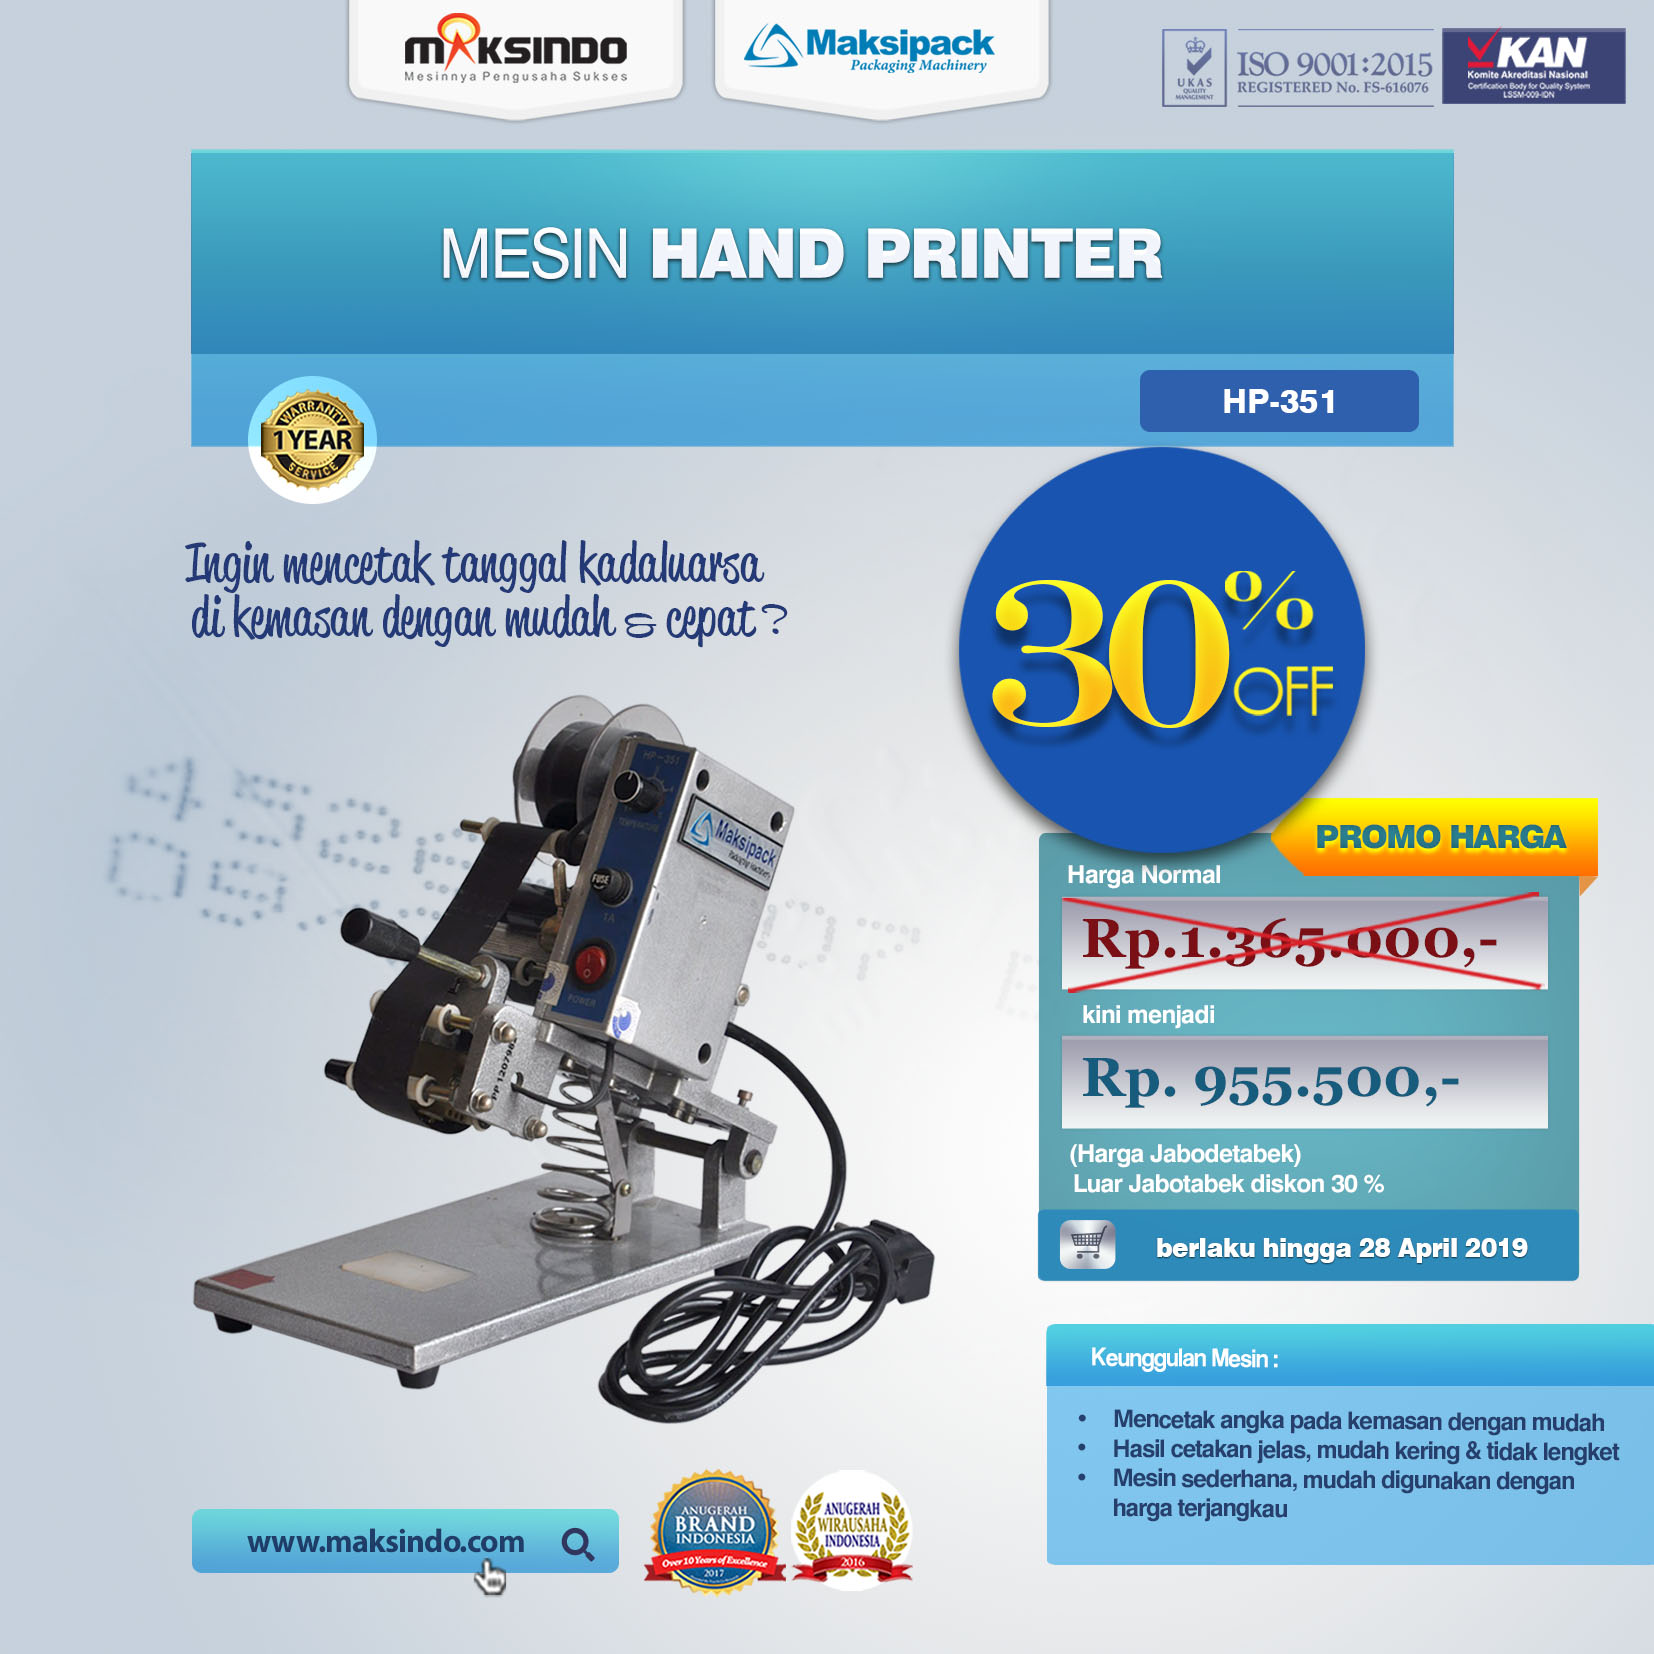 HP-351 Mesin Hand Printer